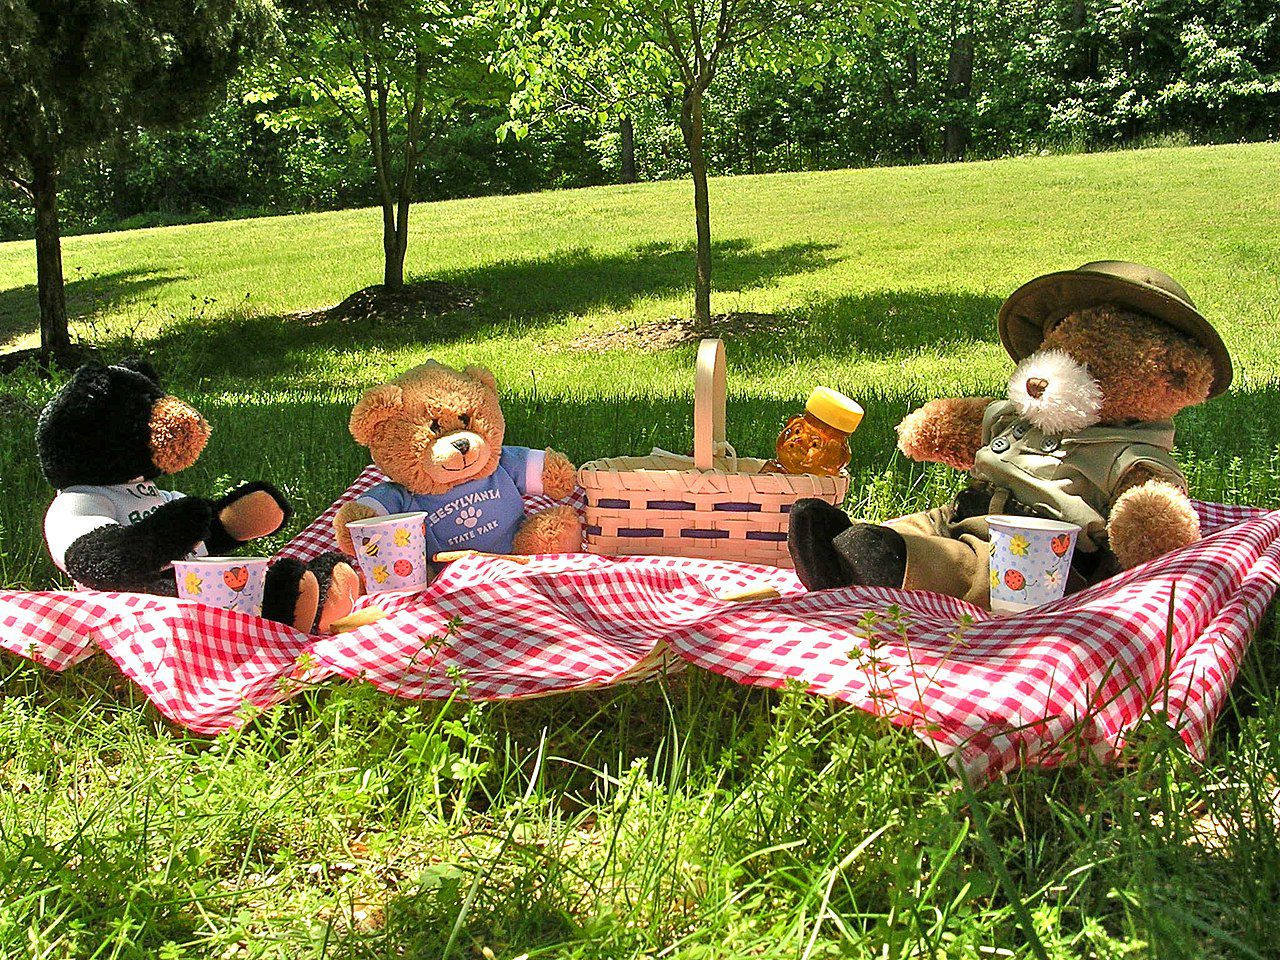 Picnic Time for Everyone